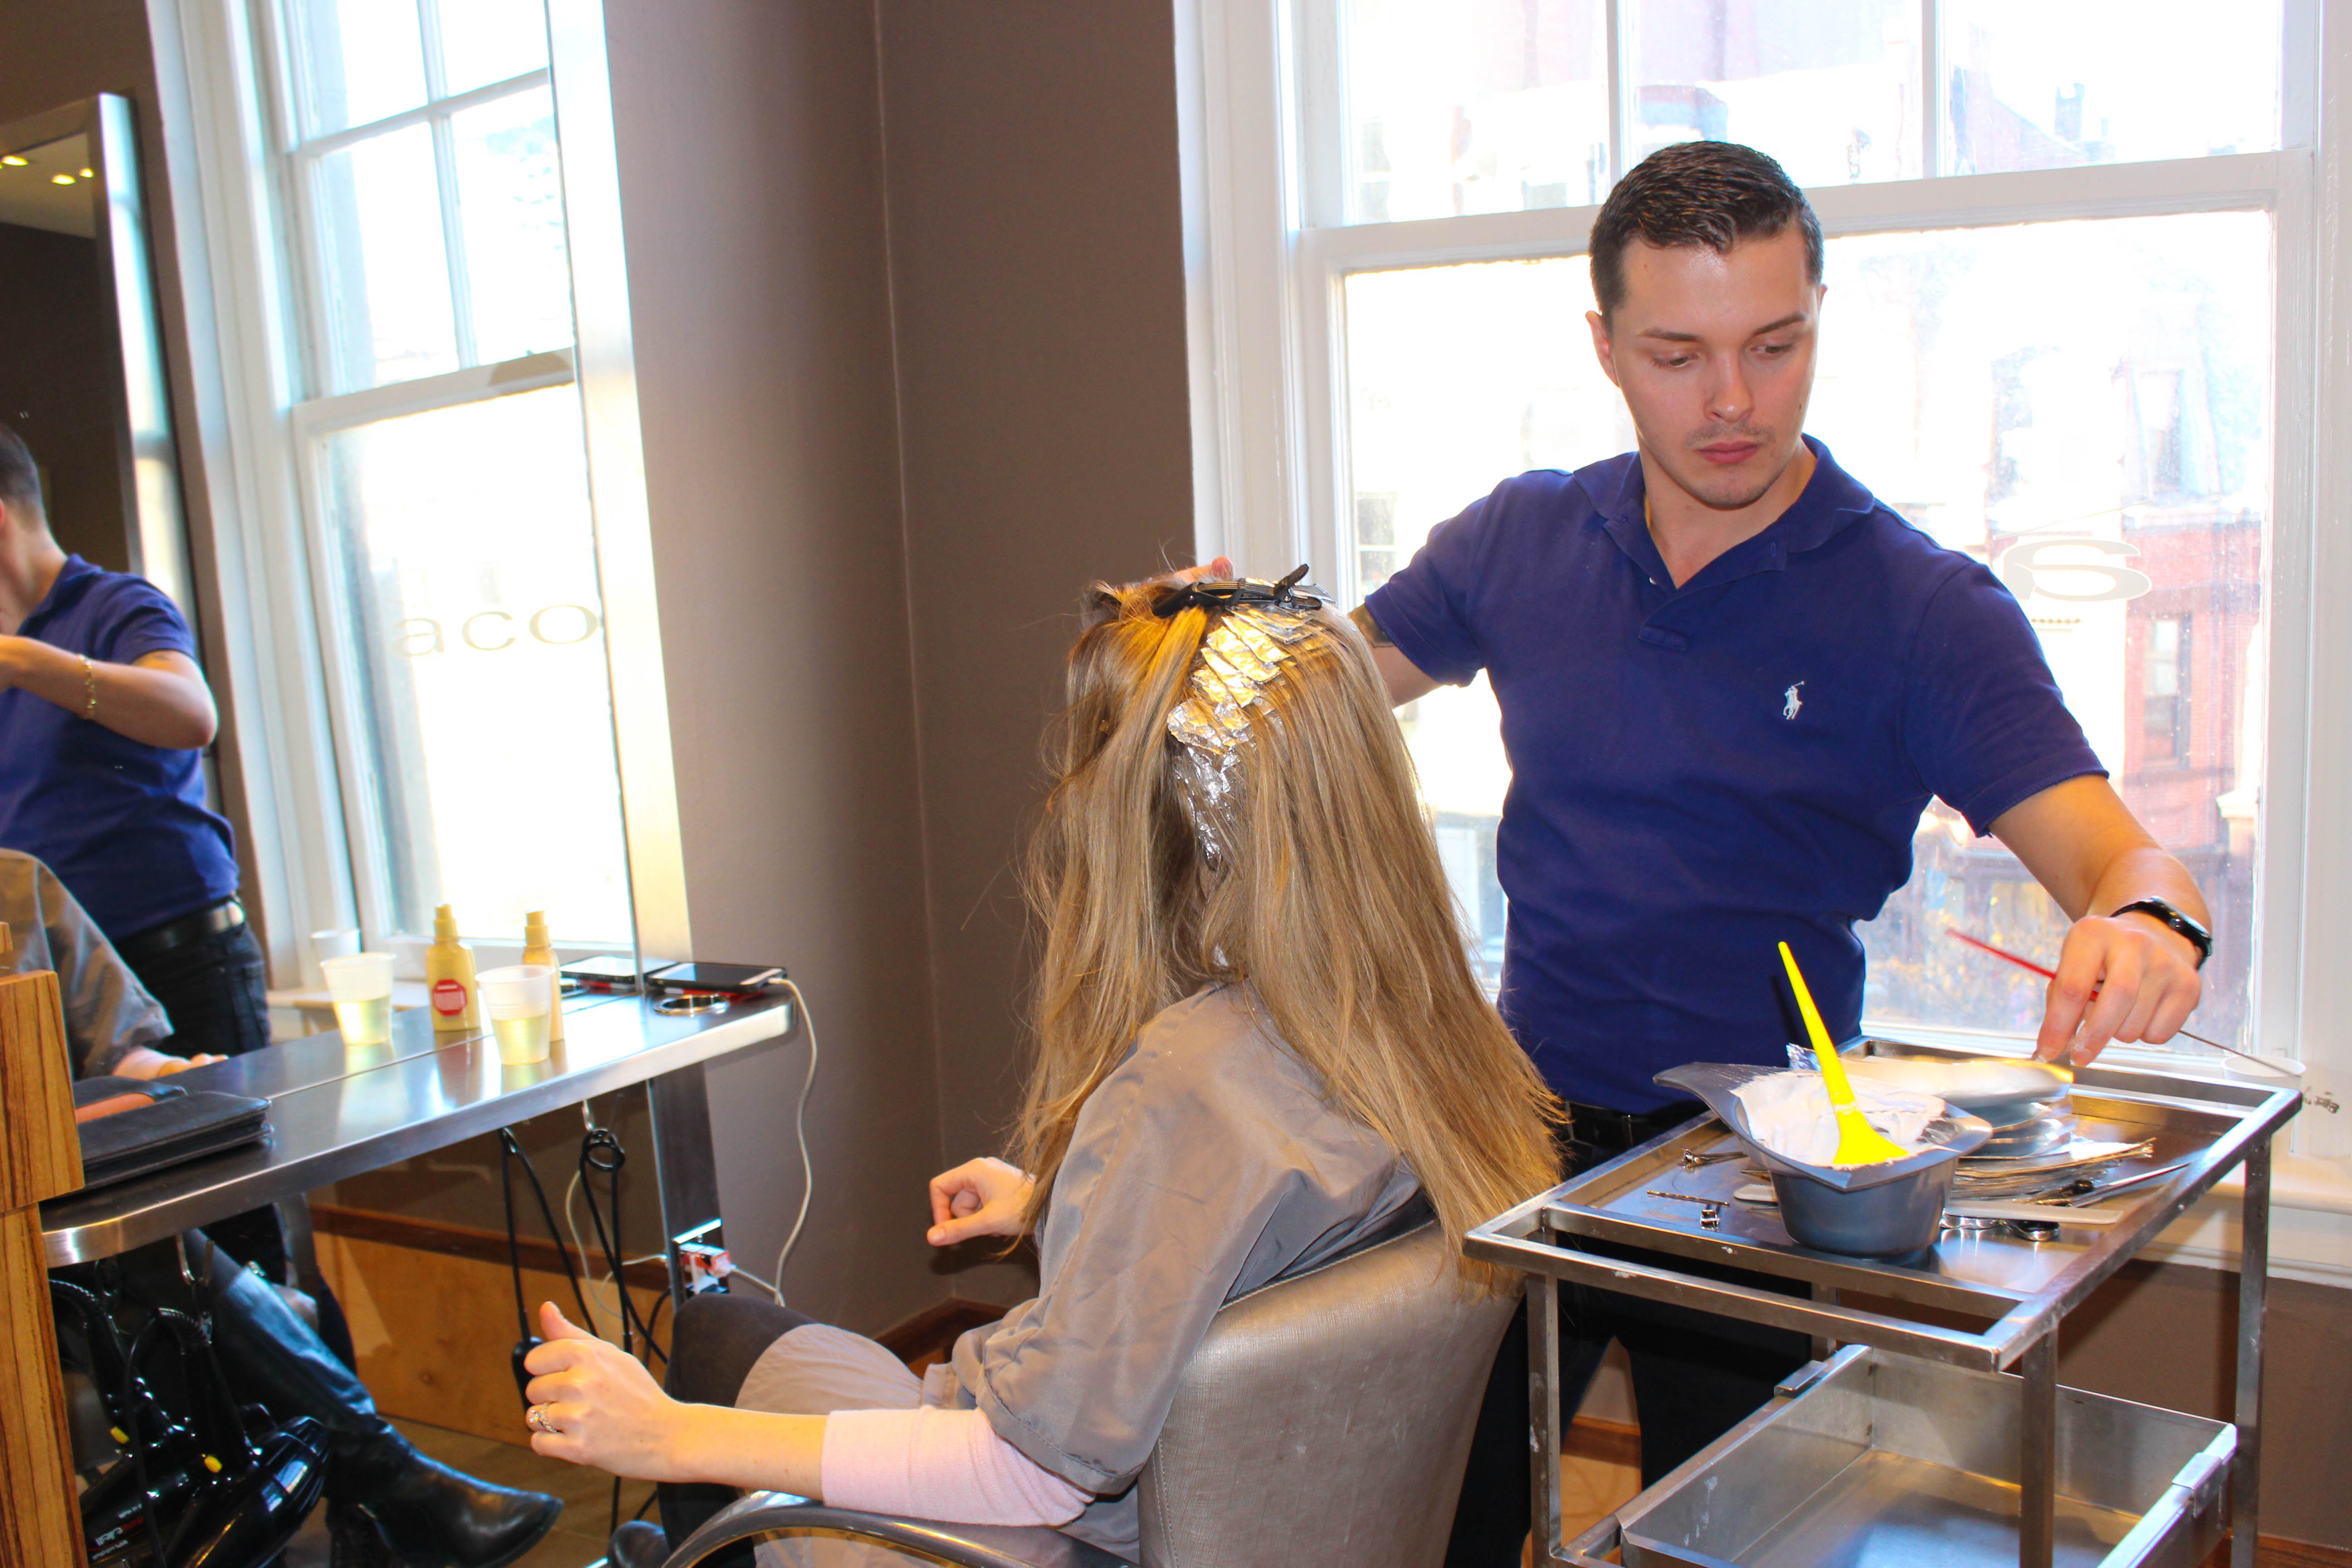 French chic hair foils at Salon Acote in Boston